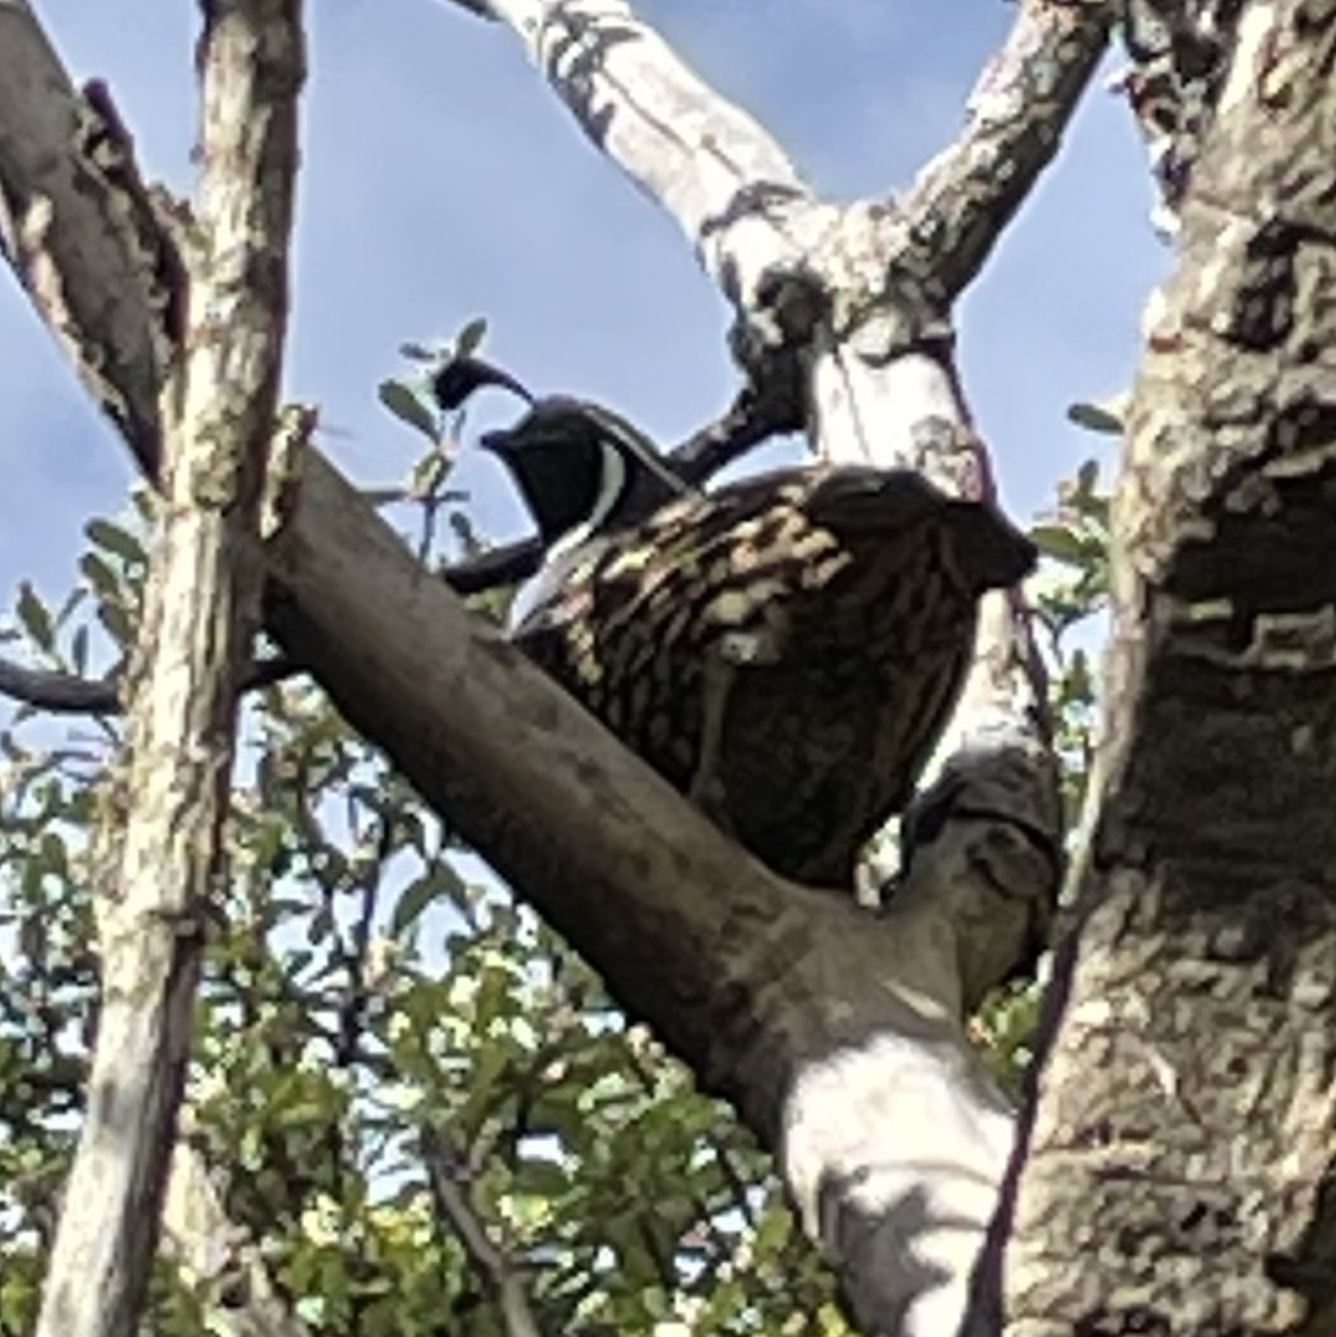 A California quail sitting in a tree, with its head in profile showing its distinctive head feather which hangs over the birds face like a fish rod and lure